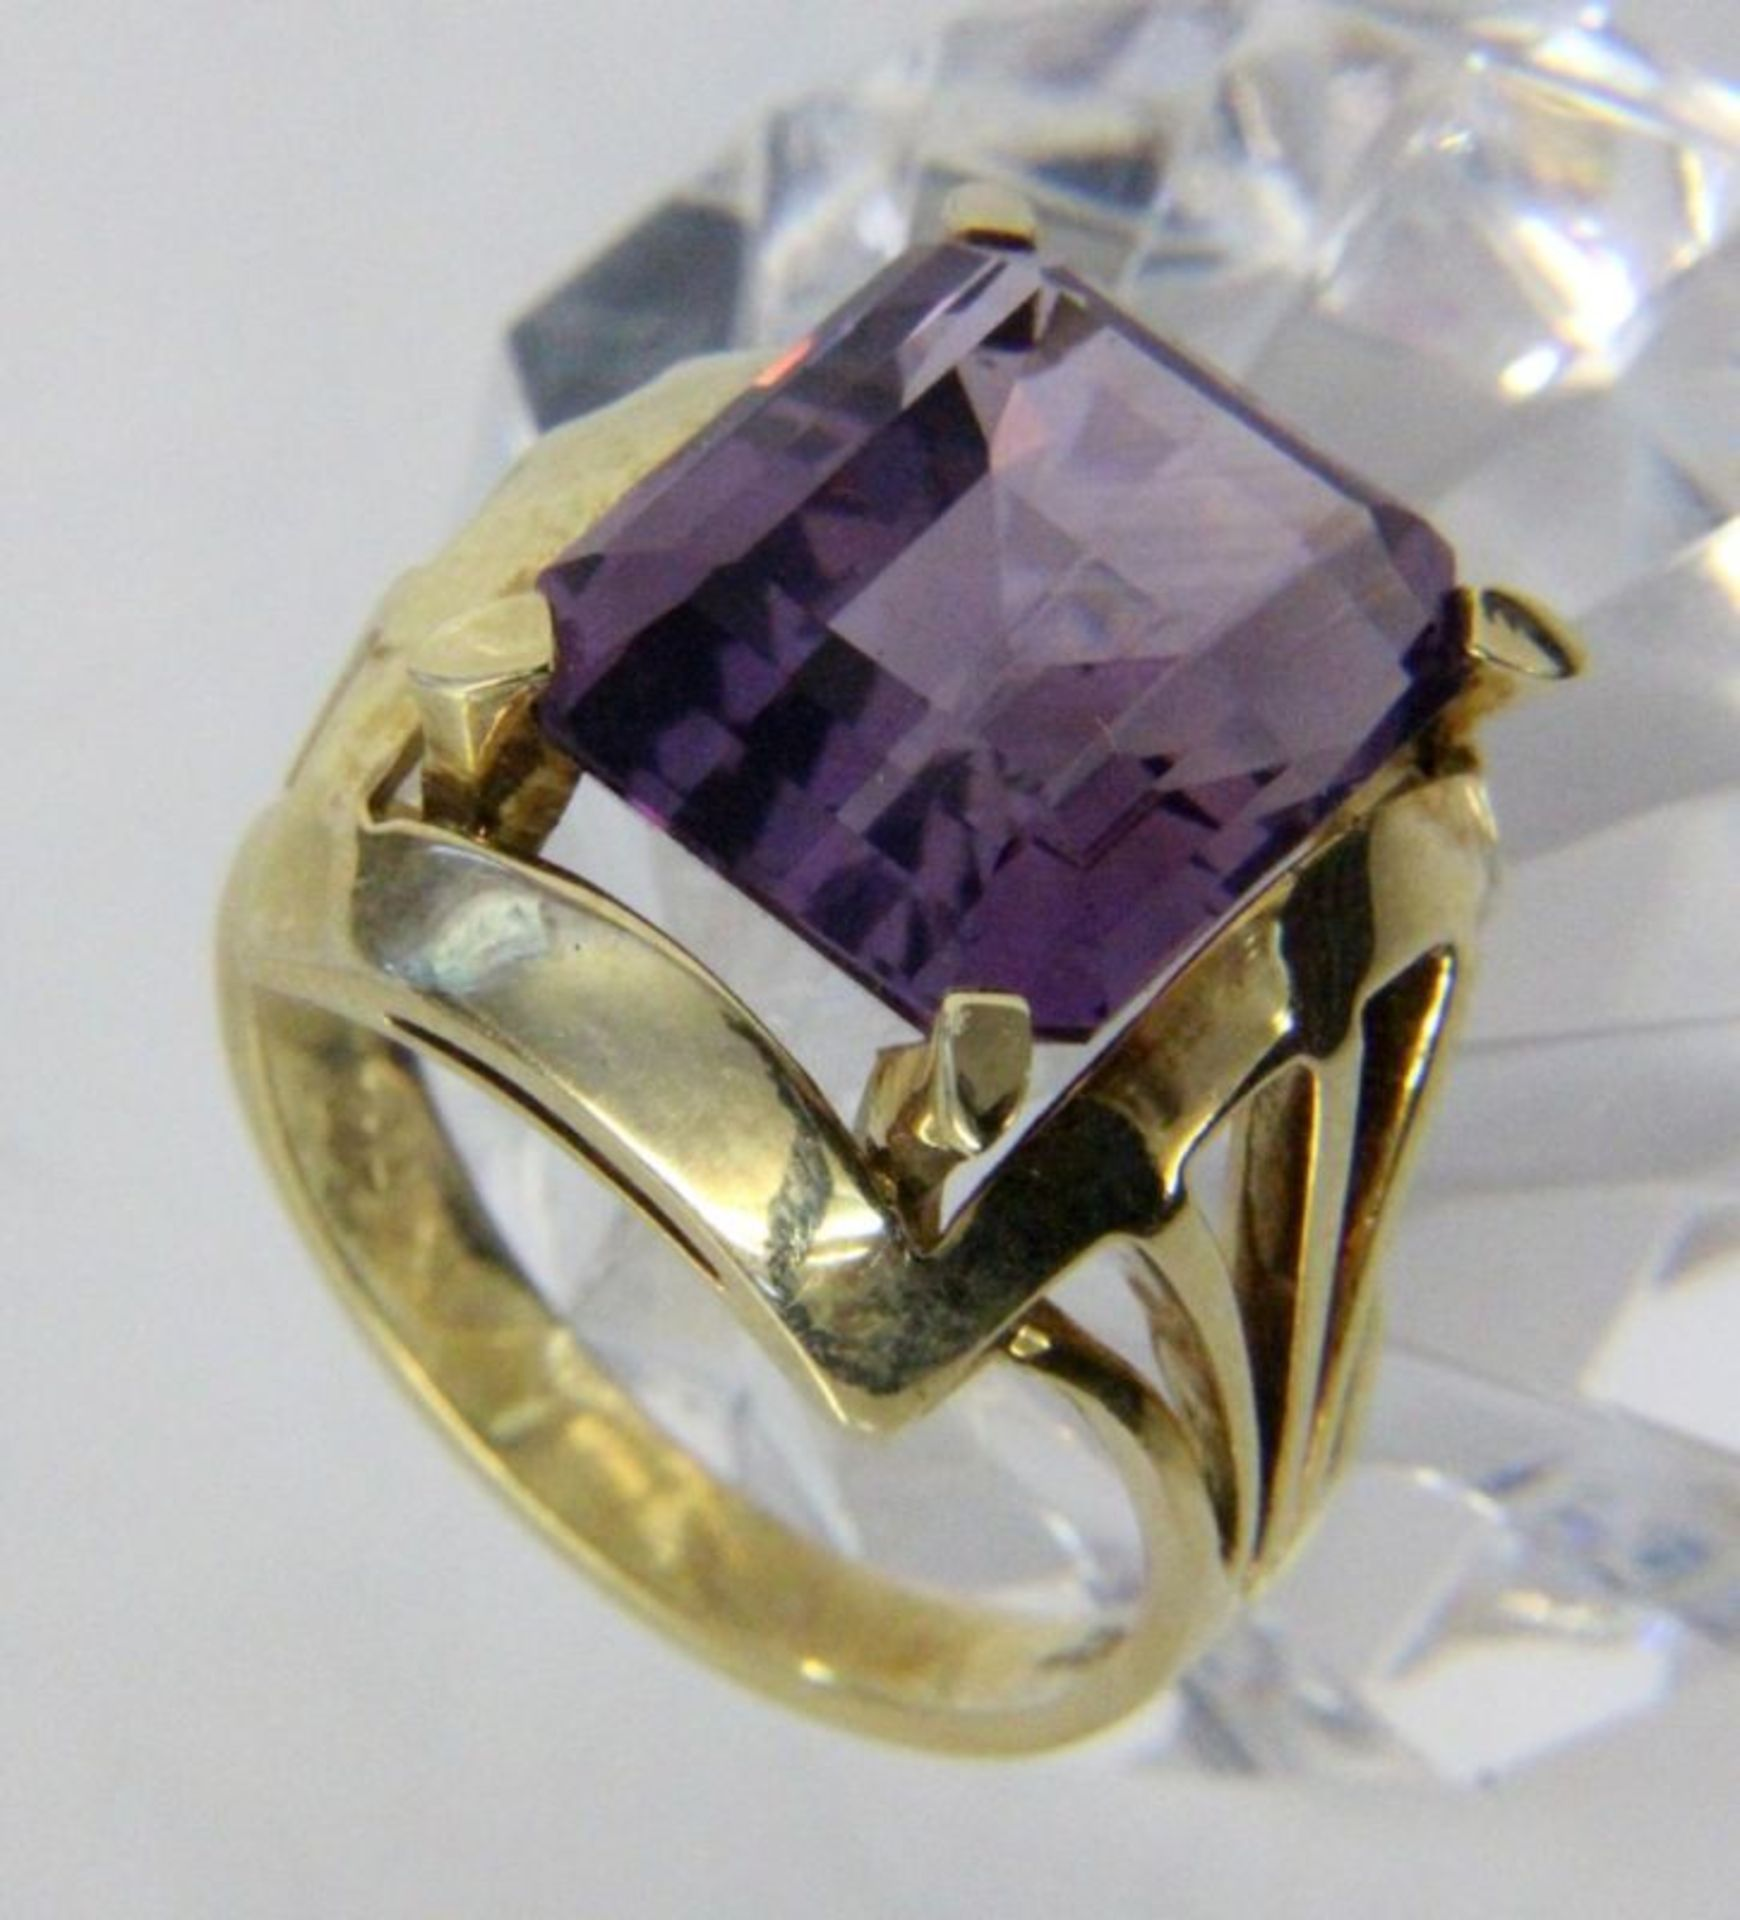 DAMENRING585/000 Gelbgold mit Amethyst. Ringgr. 57, Brutto ca. 8,6gA LADIES RING 585/000 yellow gold